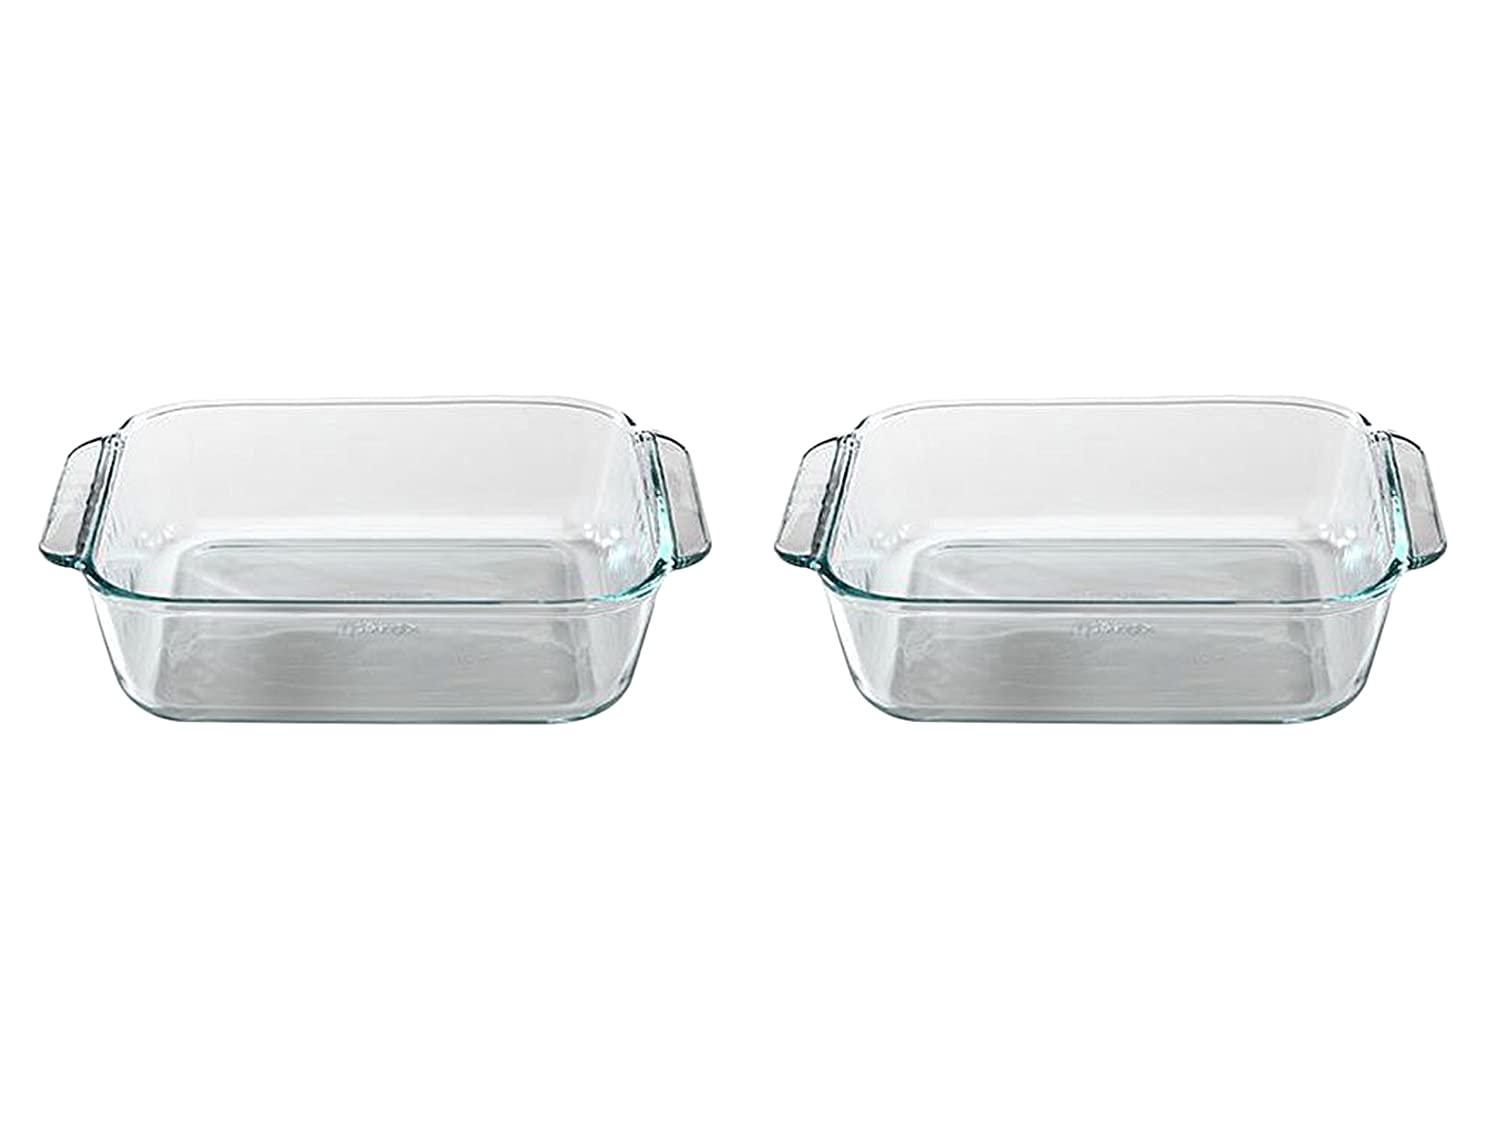 "Set of 2 Pyrex 8"" Square Baking Dish bundled by Maven Gifts"